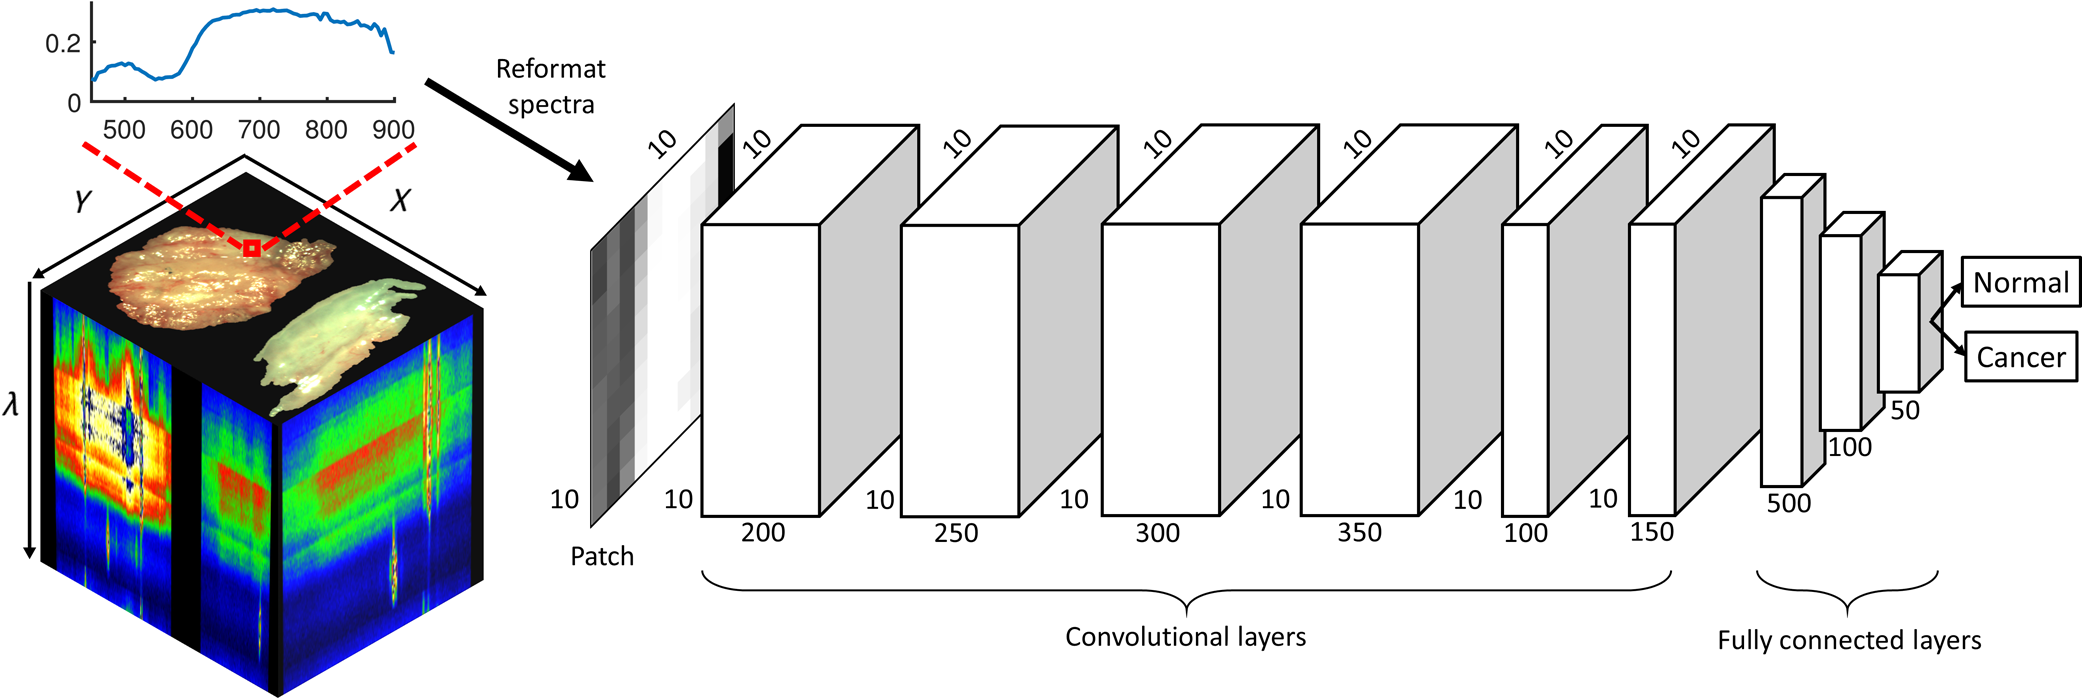 Deep convolutional neural networks for classifying head and neck